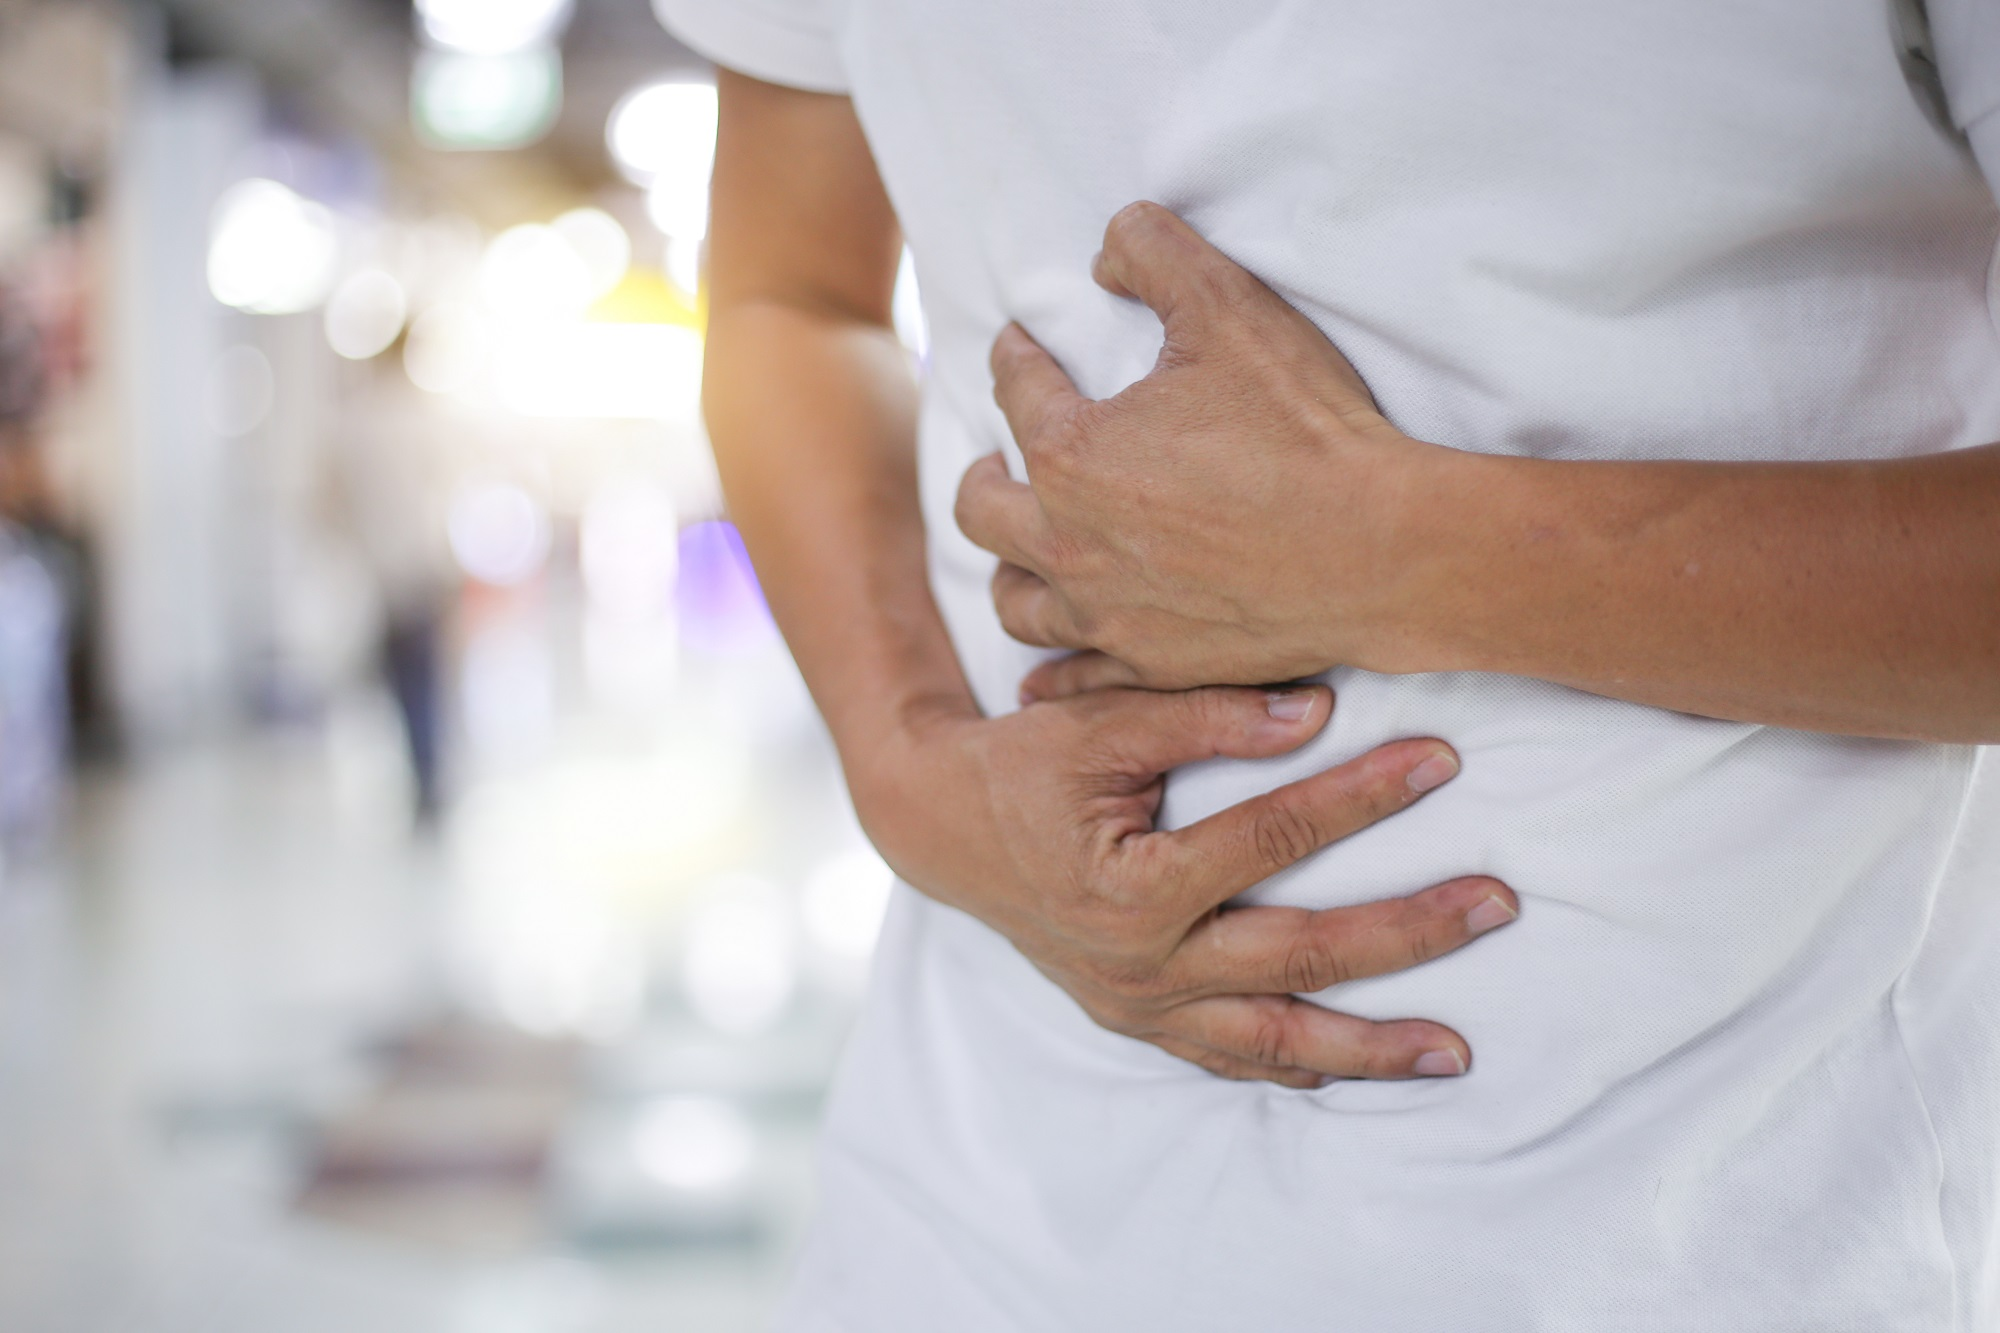 Treatment With Nsaids For Ankylosing Spondylitis Linked To